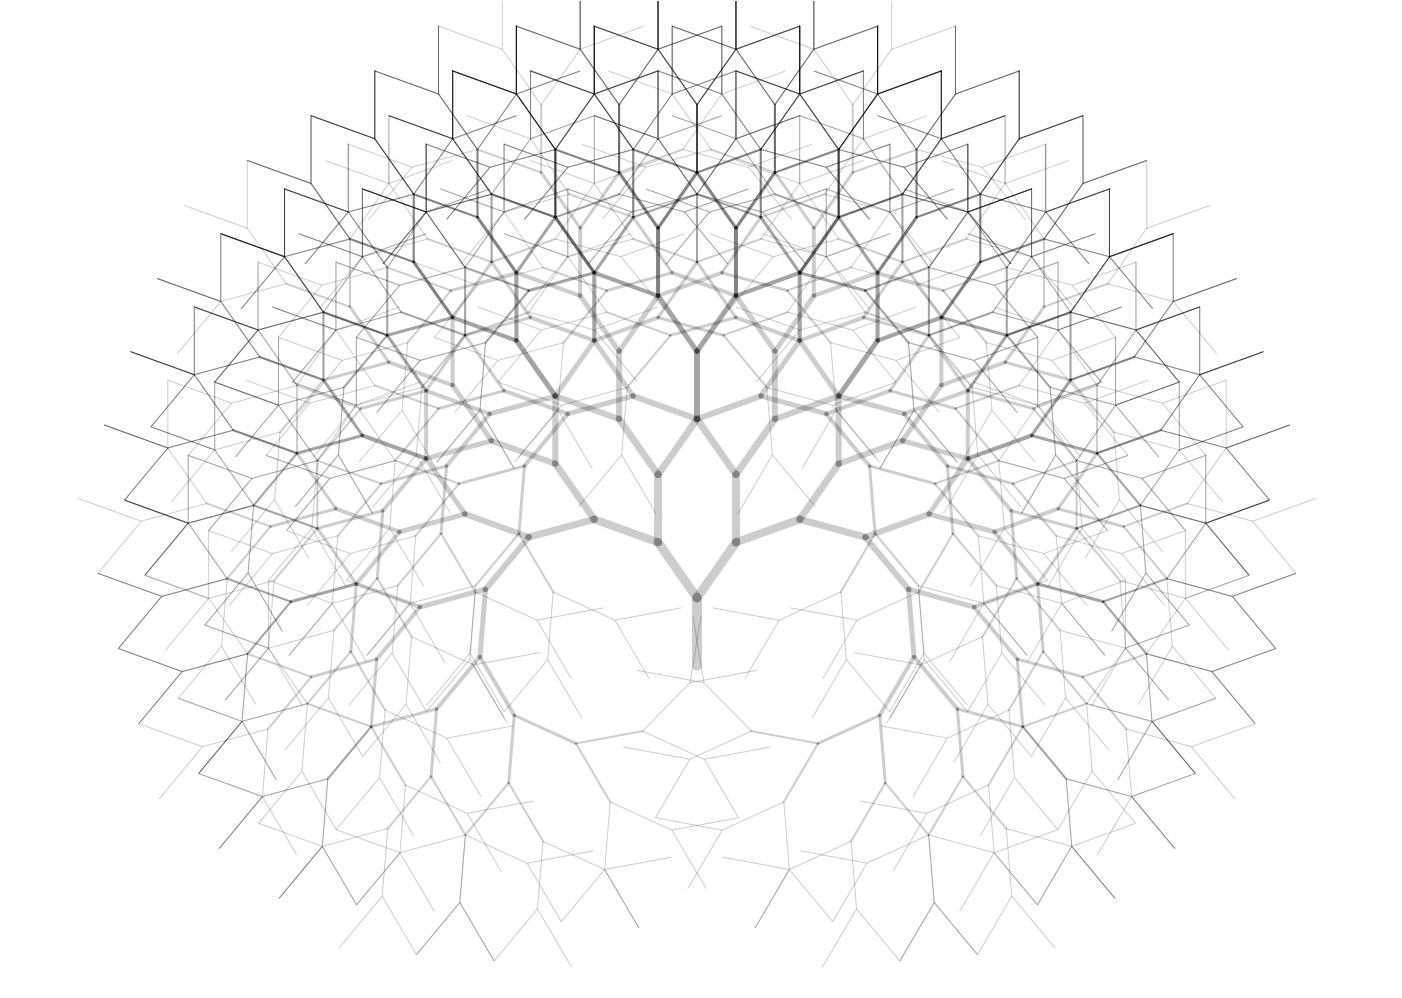 Fractal clipart #1, Download drawings